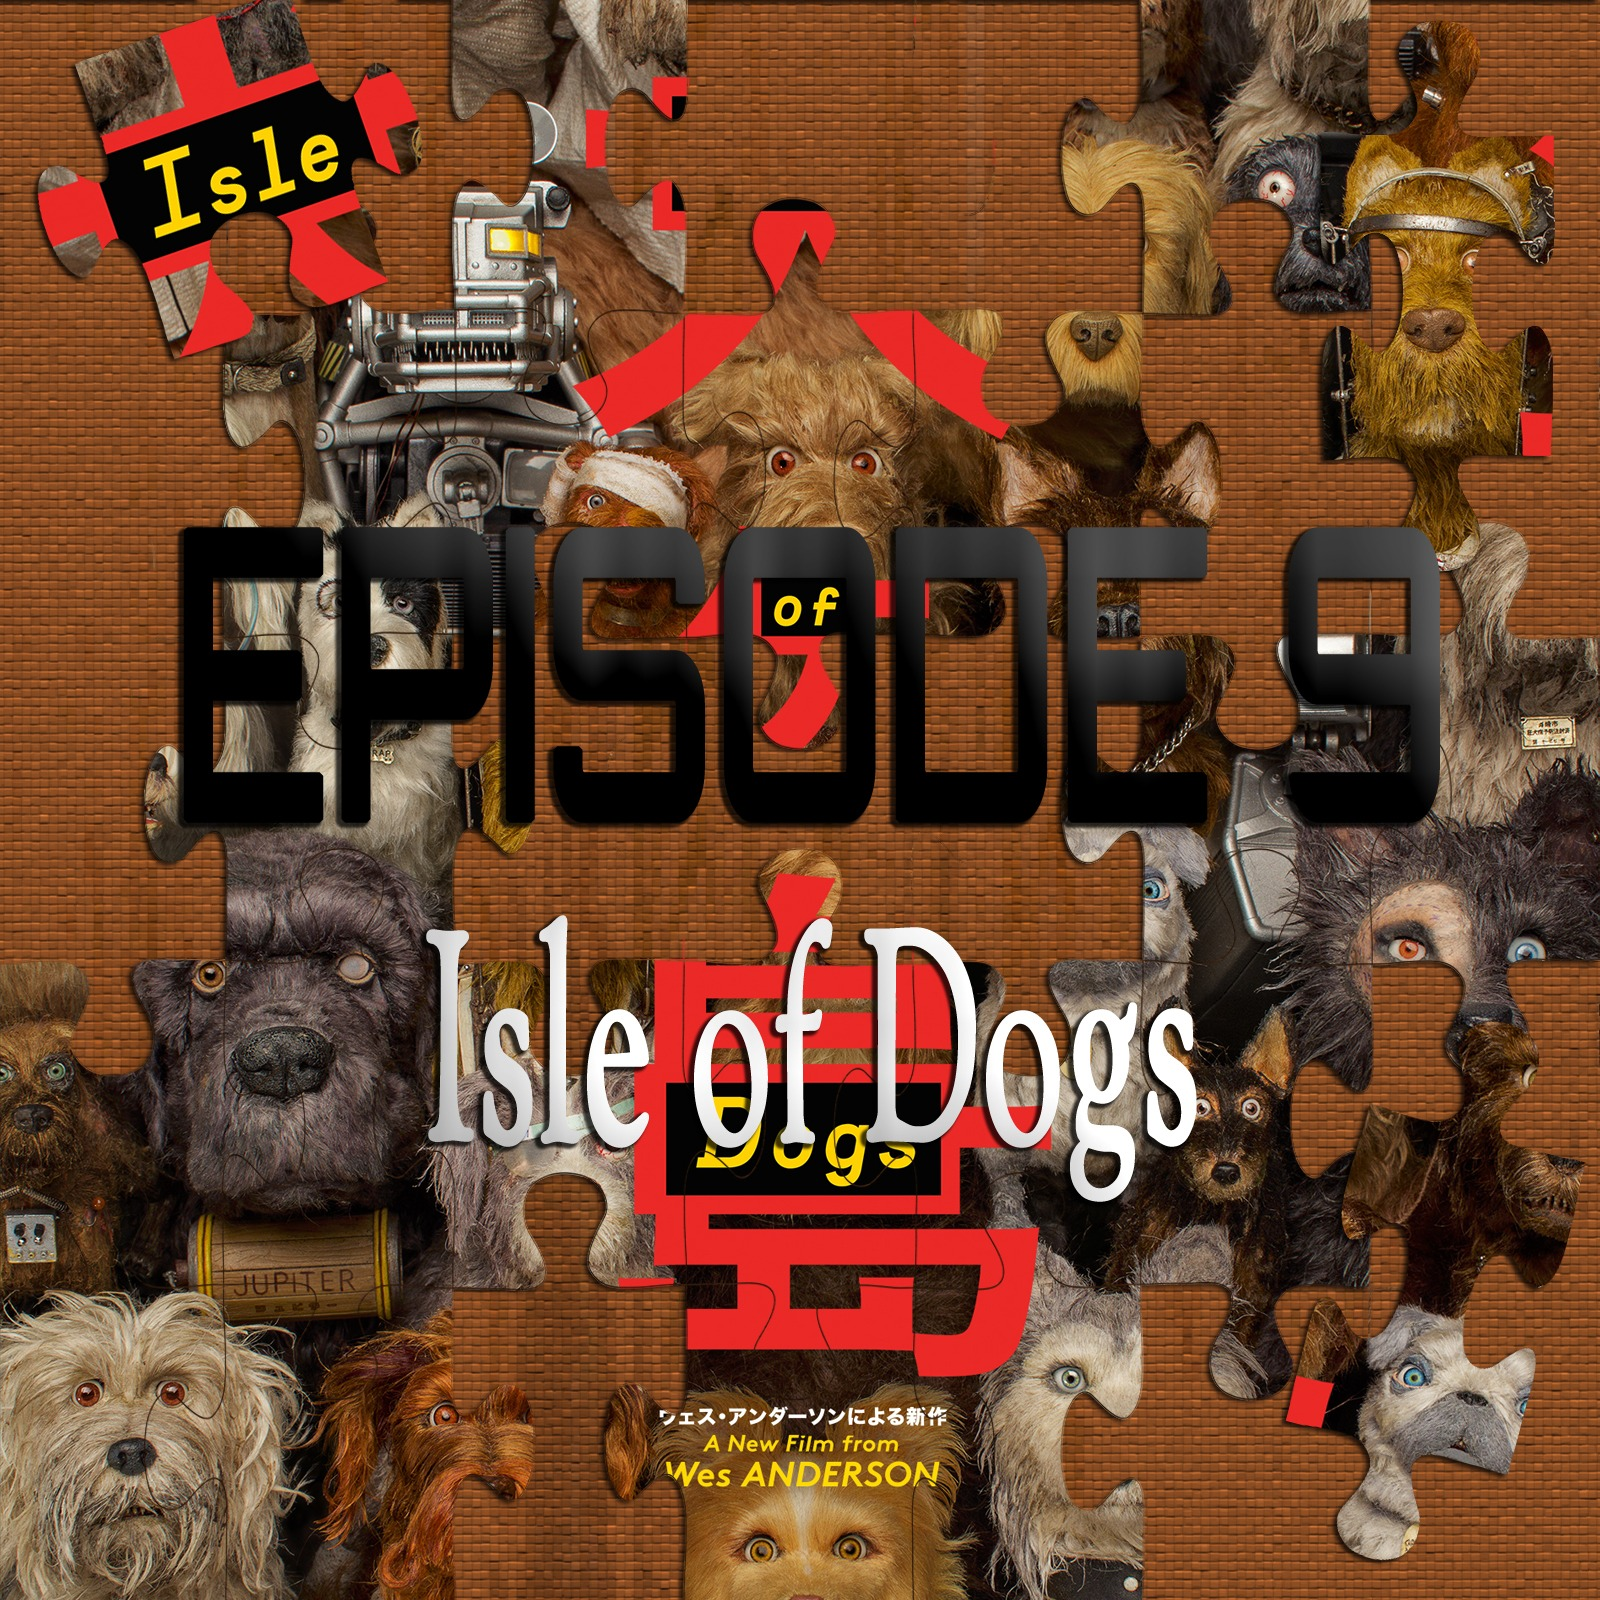 Isle Of Dogs (Featuring Kris Krainock)